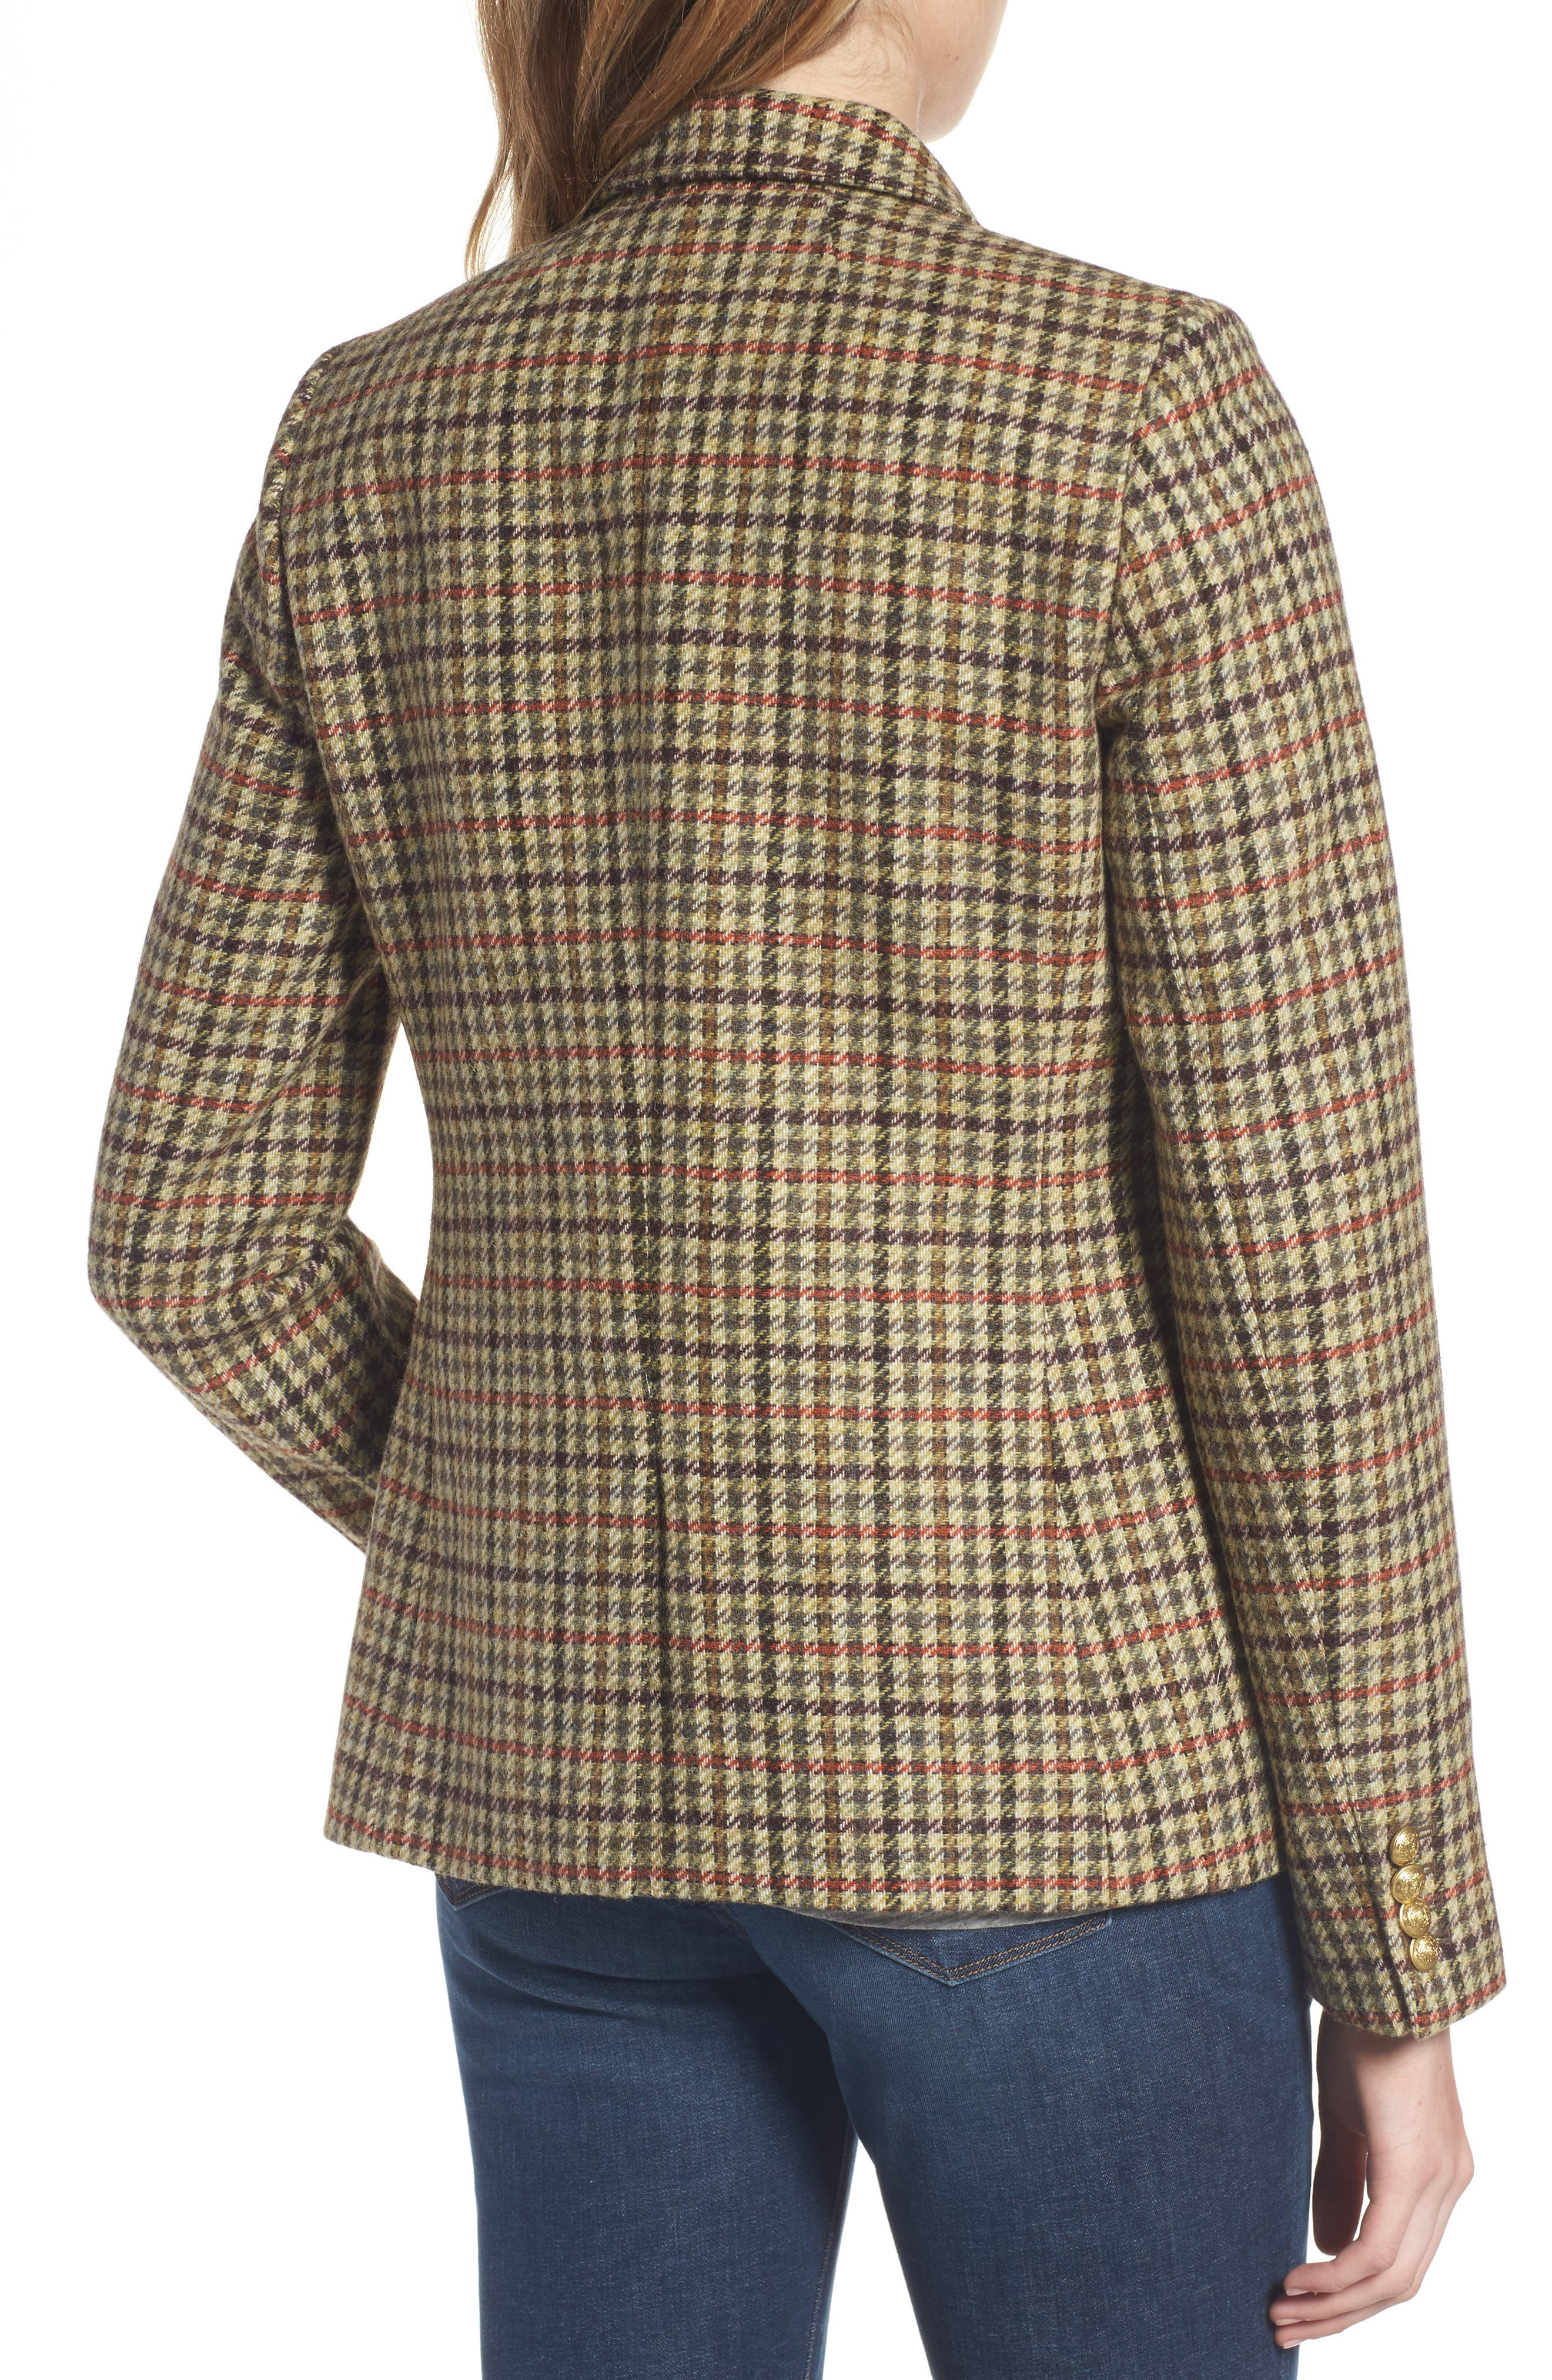 Alternate Image 3  - J.Crew Regent Houndstooth Plaid Blazer (Regular & Petite)